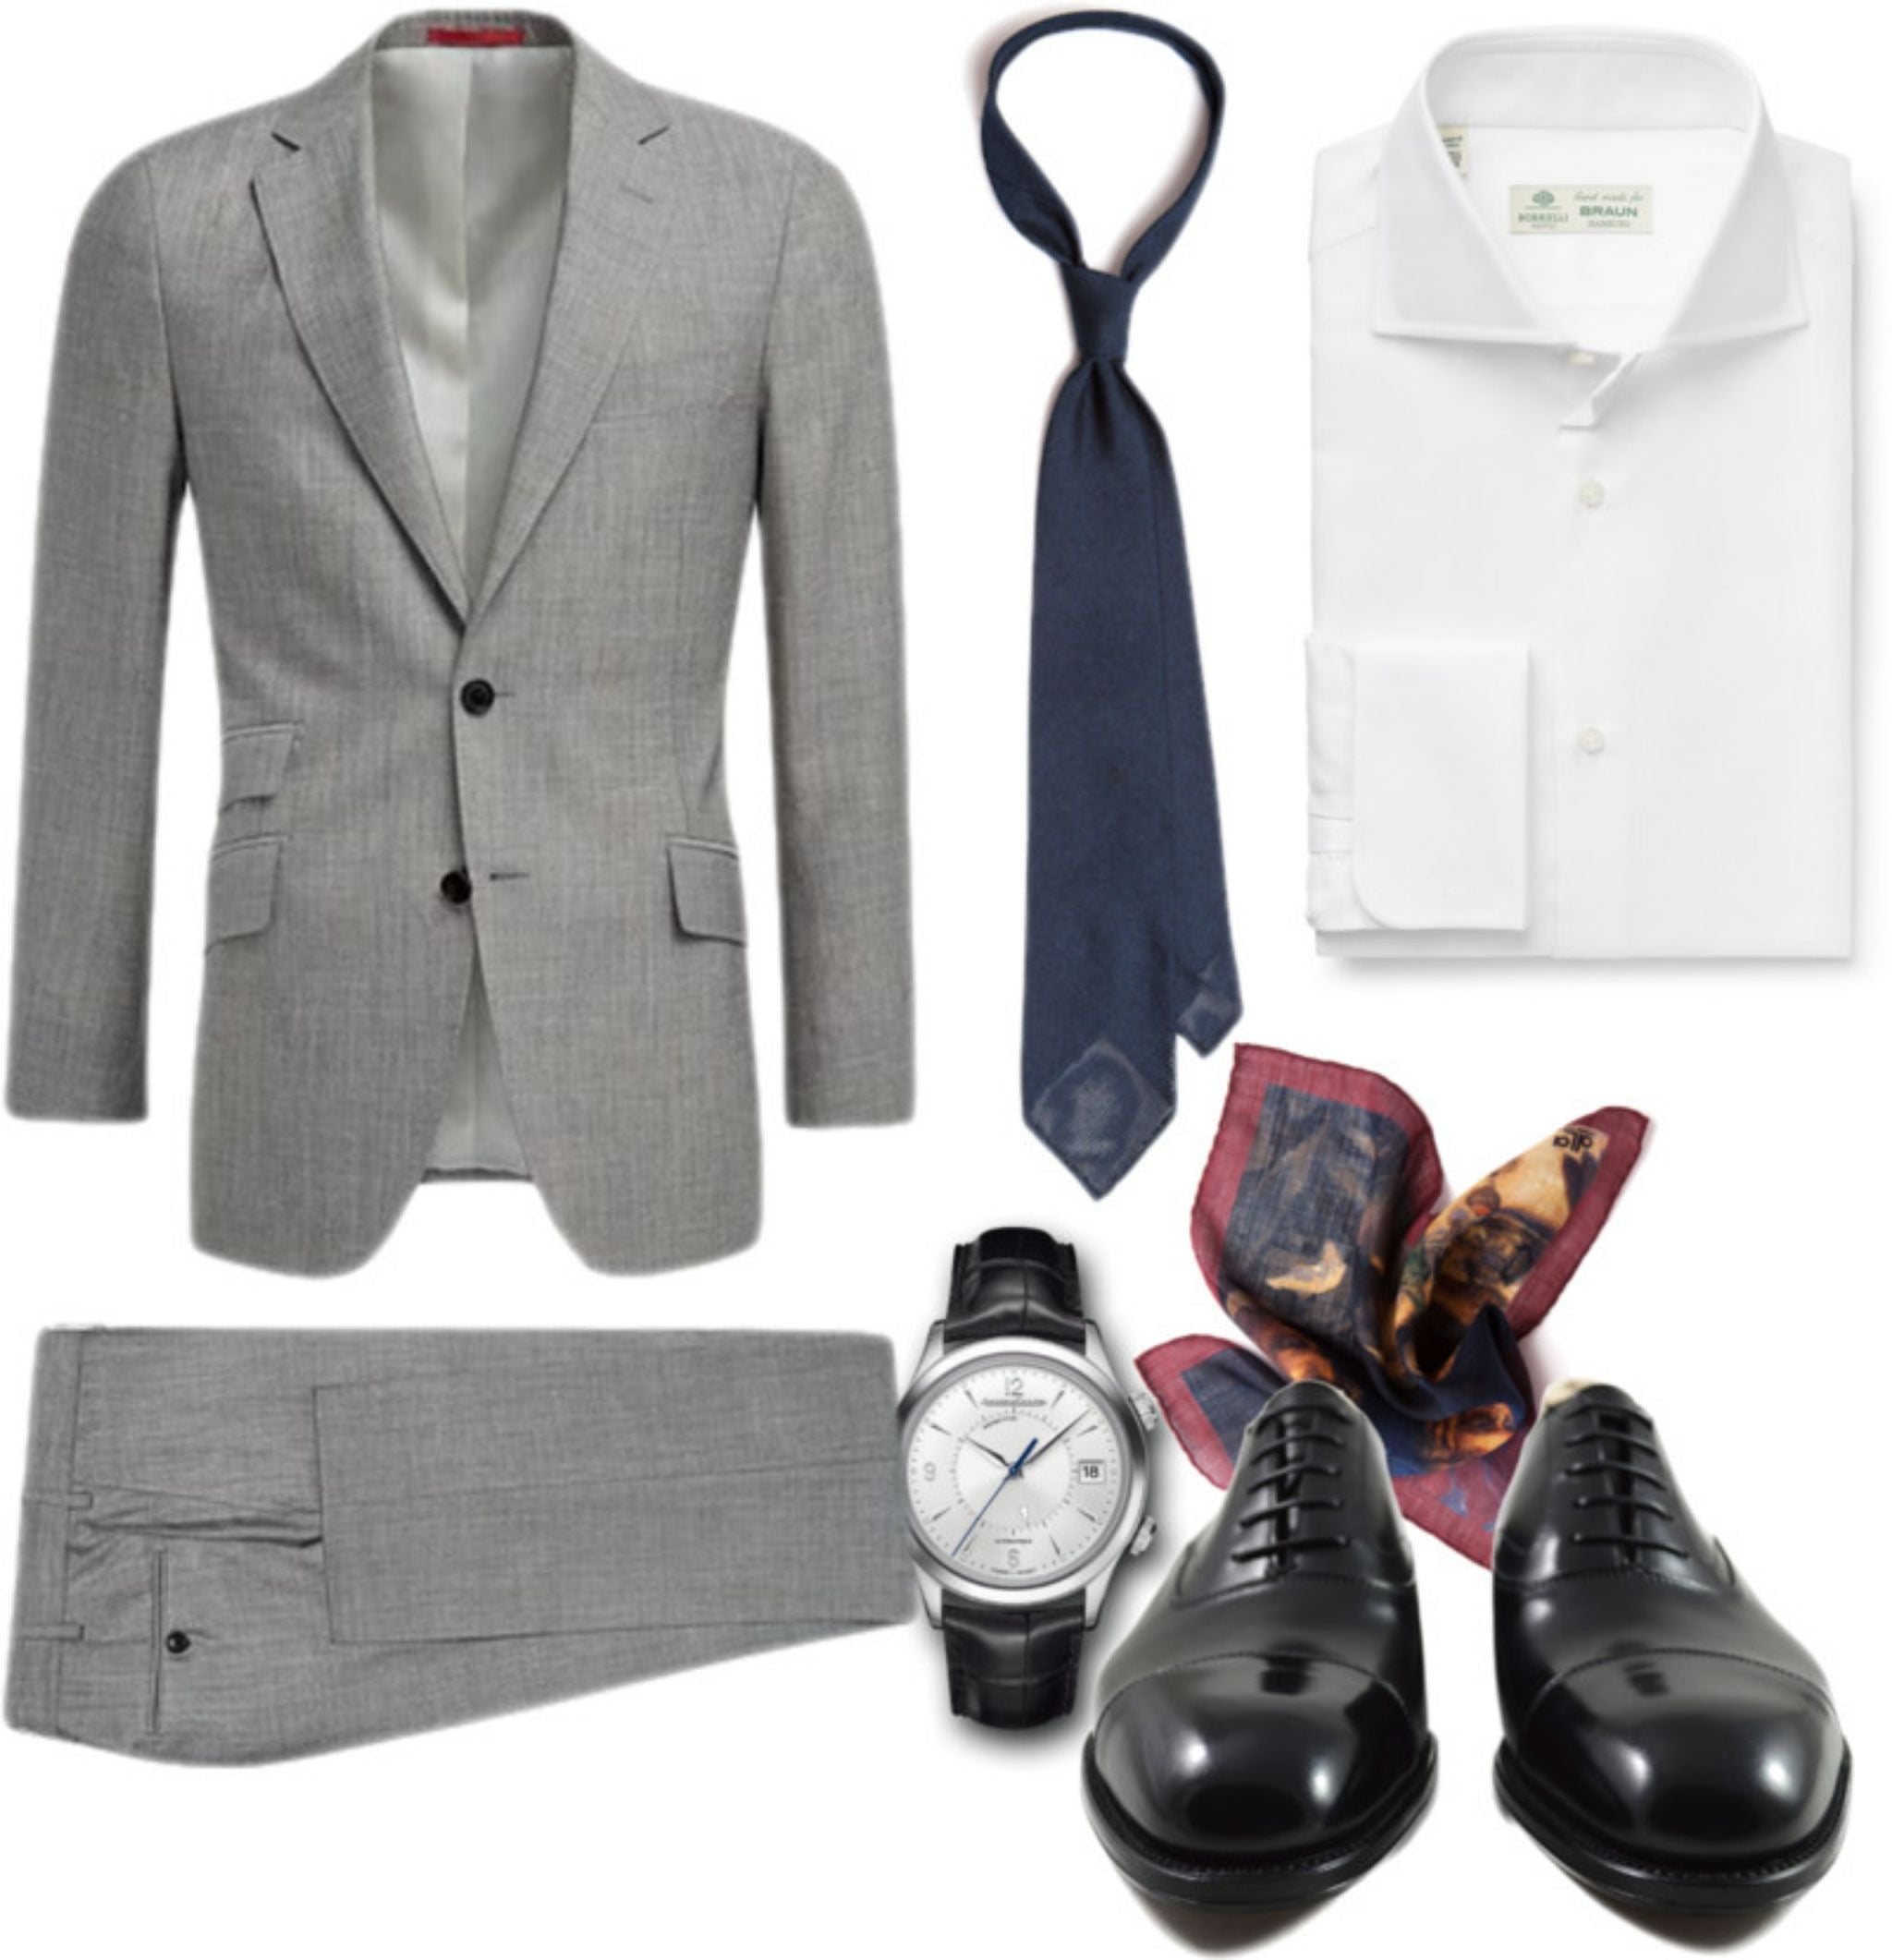 What to wear for wedding - gray suit with blue grenadine tie and black cap-top oxfords outfit